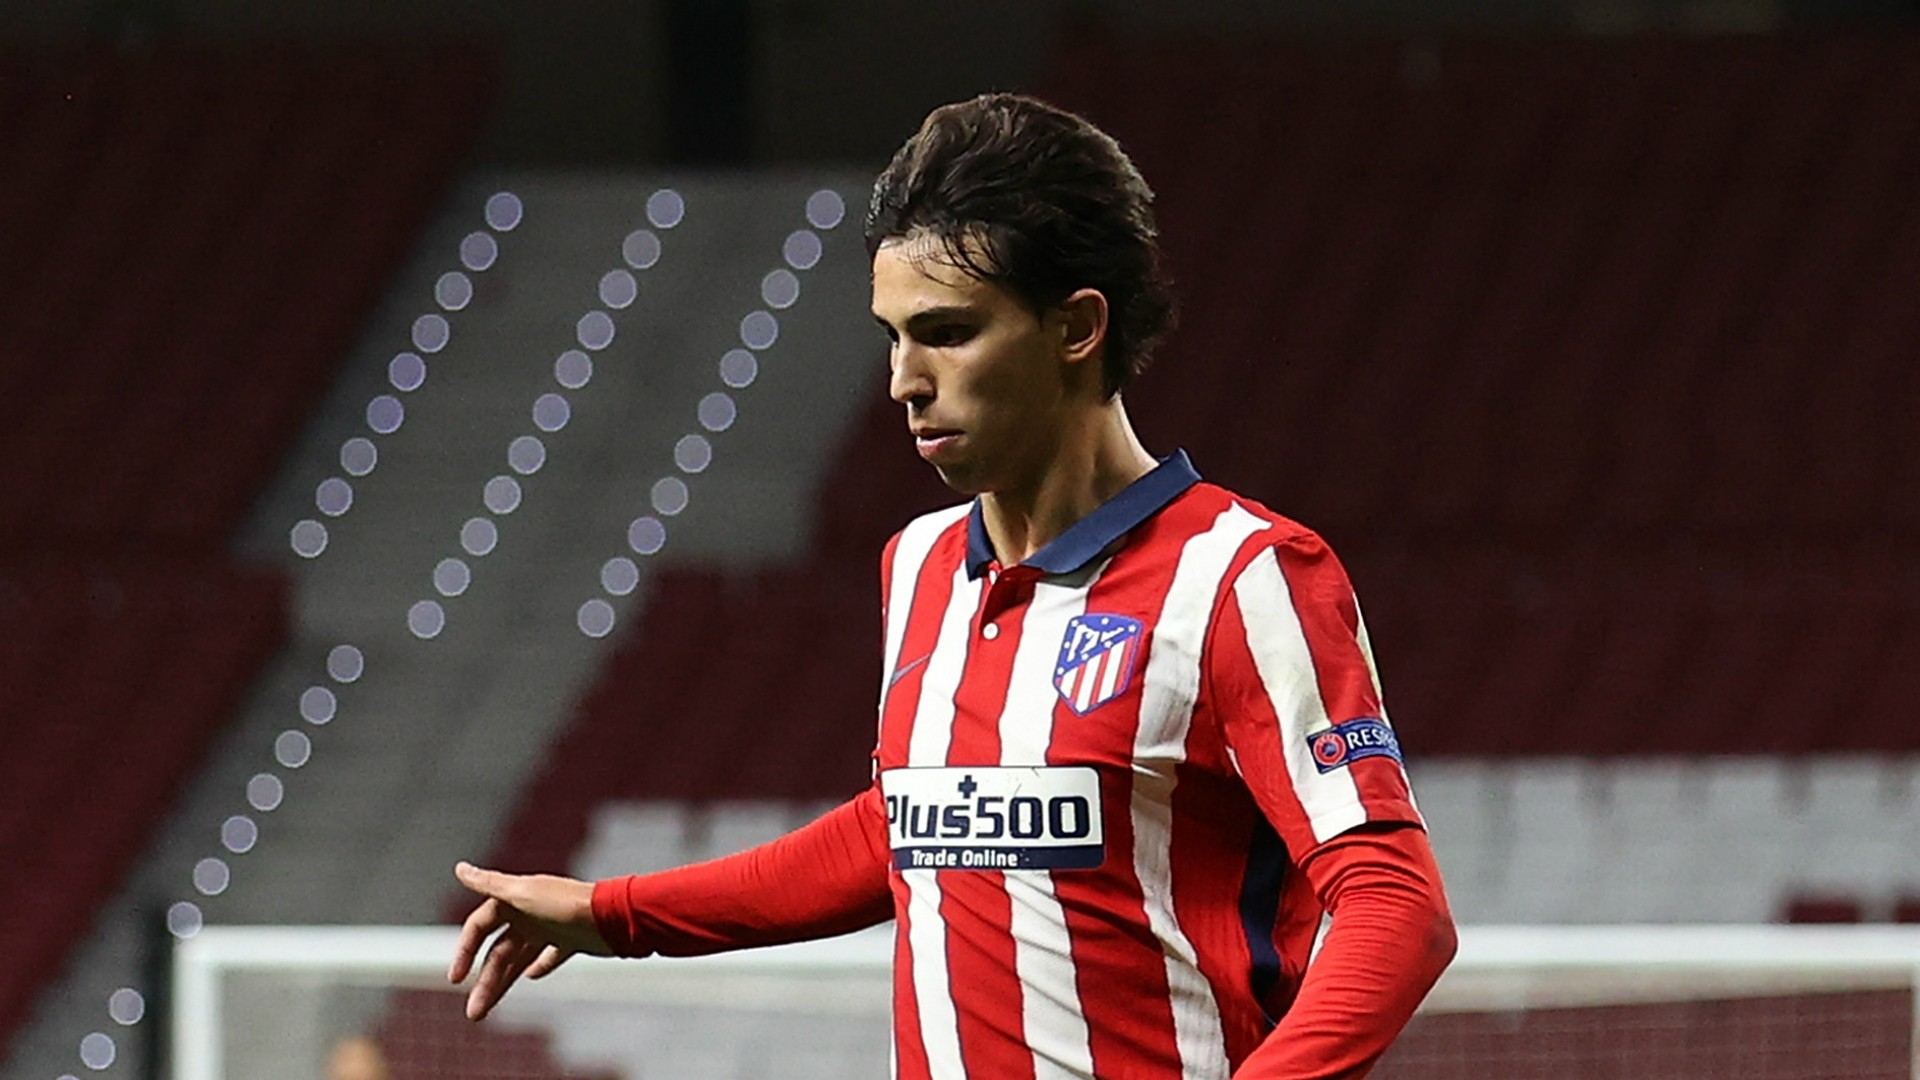 Simeone: I am clear about what I want from Joao Felix